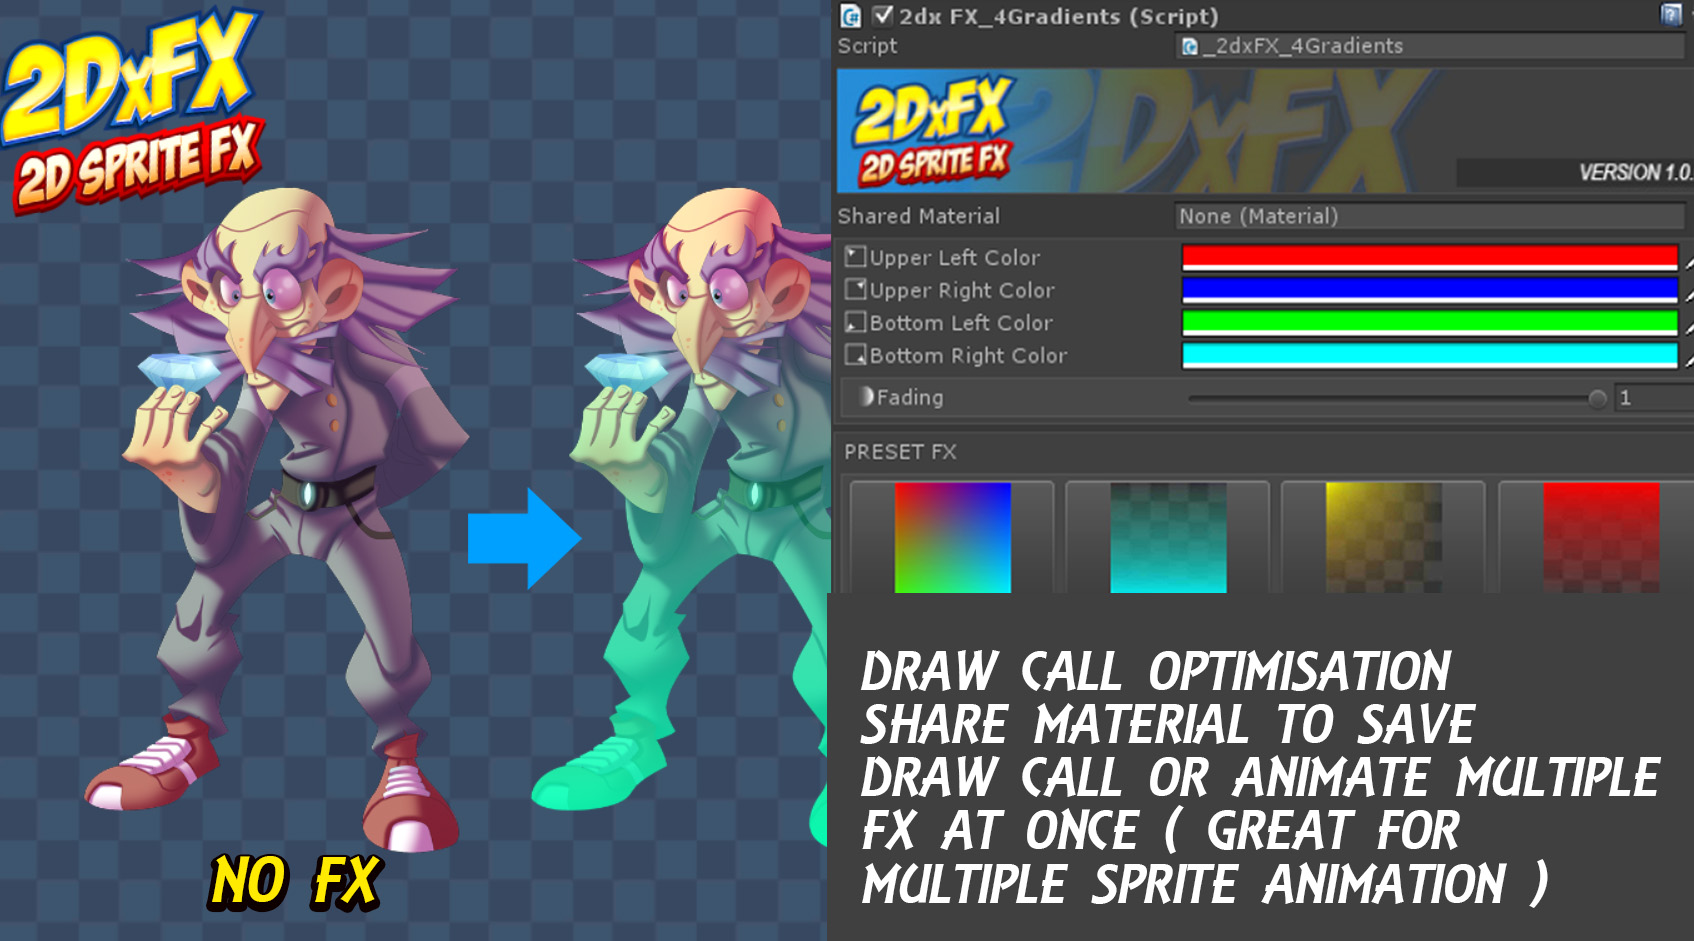 RELEASED] 2DxFX: 2D Sprite FX - Unity Forum